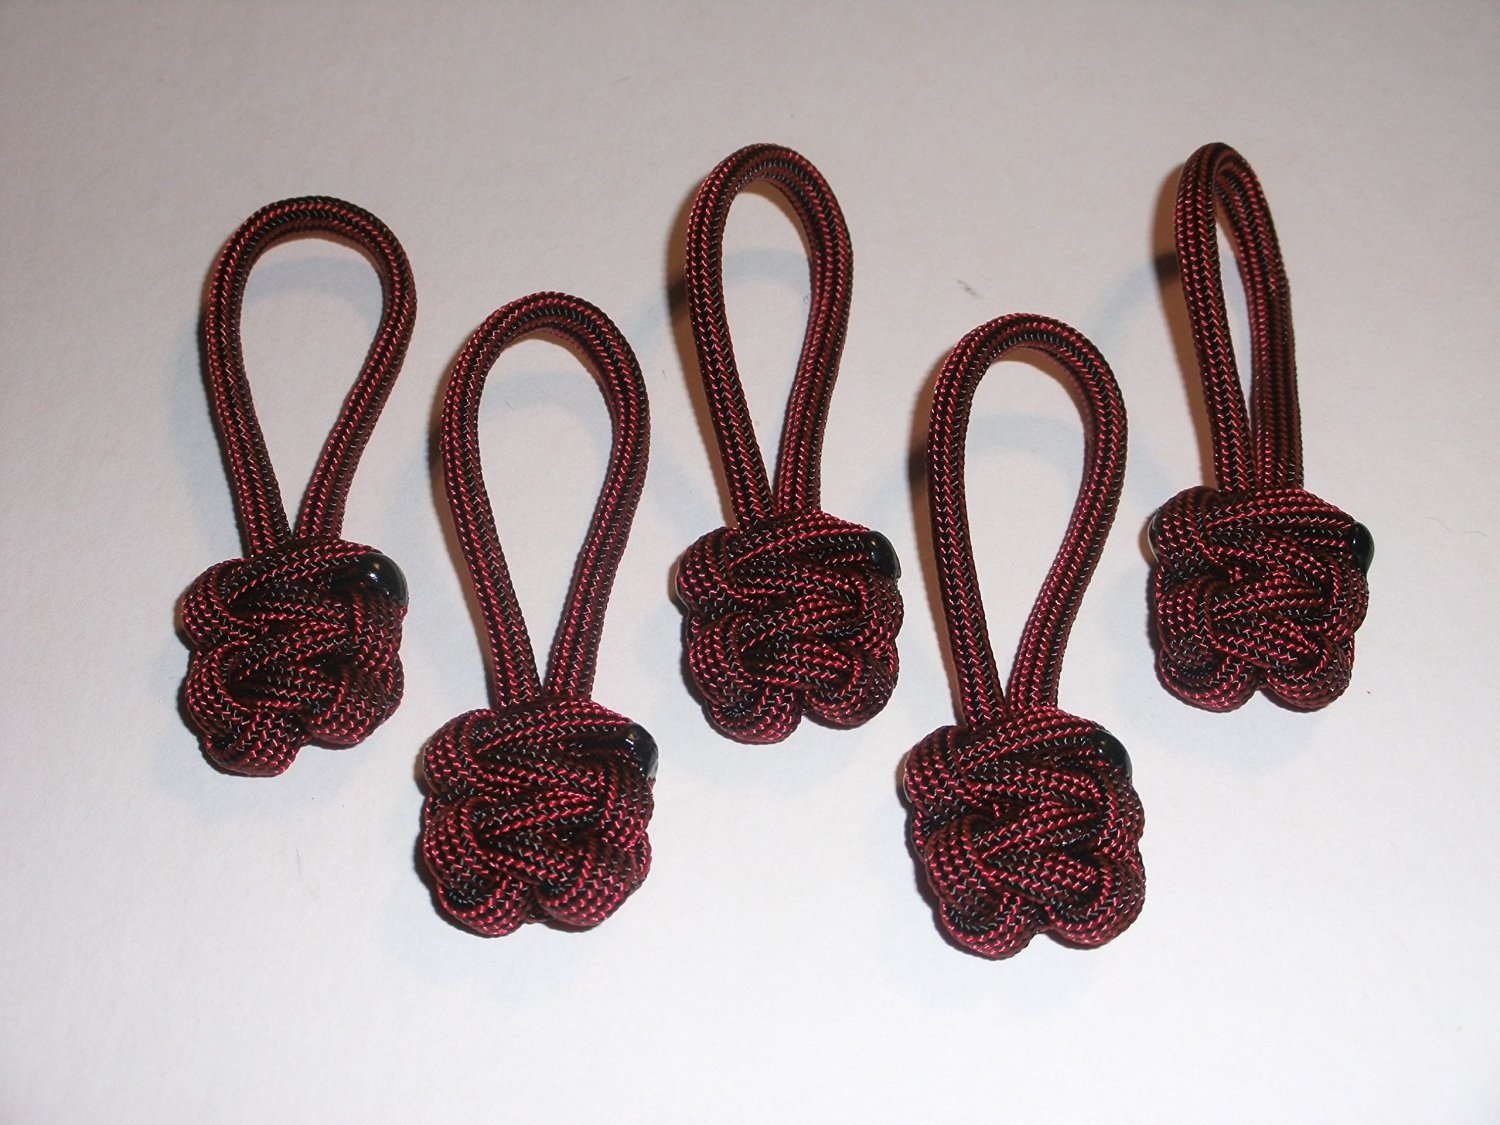 RedVex Paracord Zipper Pulls / Lanyards - Lot of 5 - ~2.5 - Red & Black